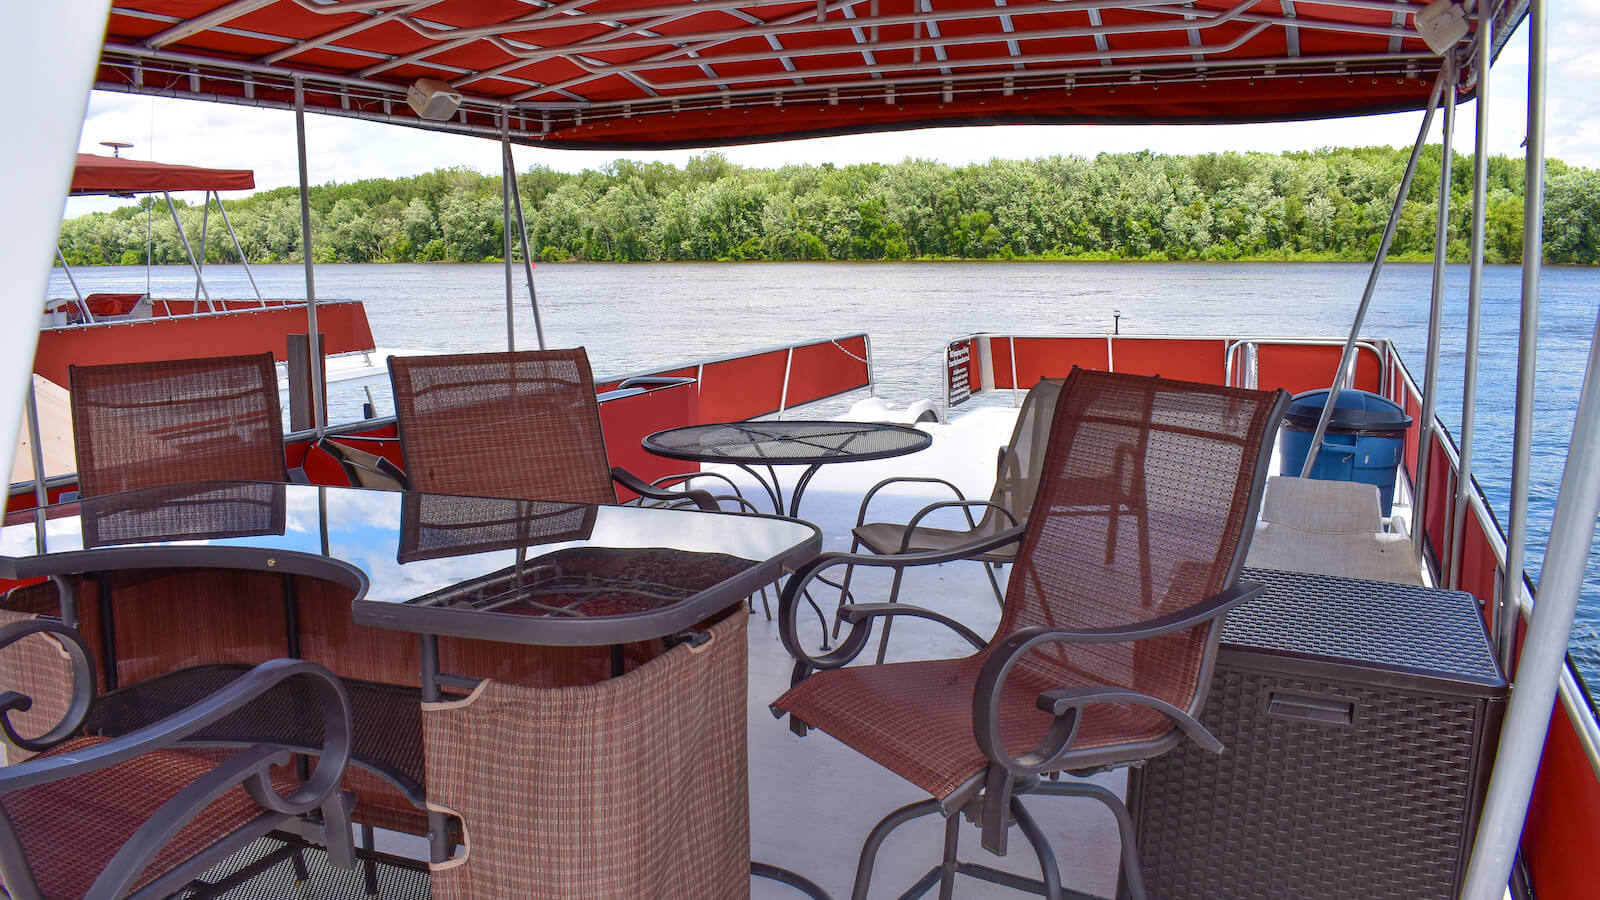 Deck of the S&S Rentals Riverview 58' Houseboat